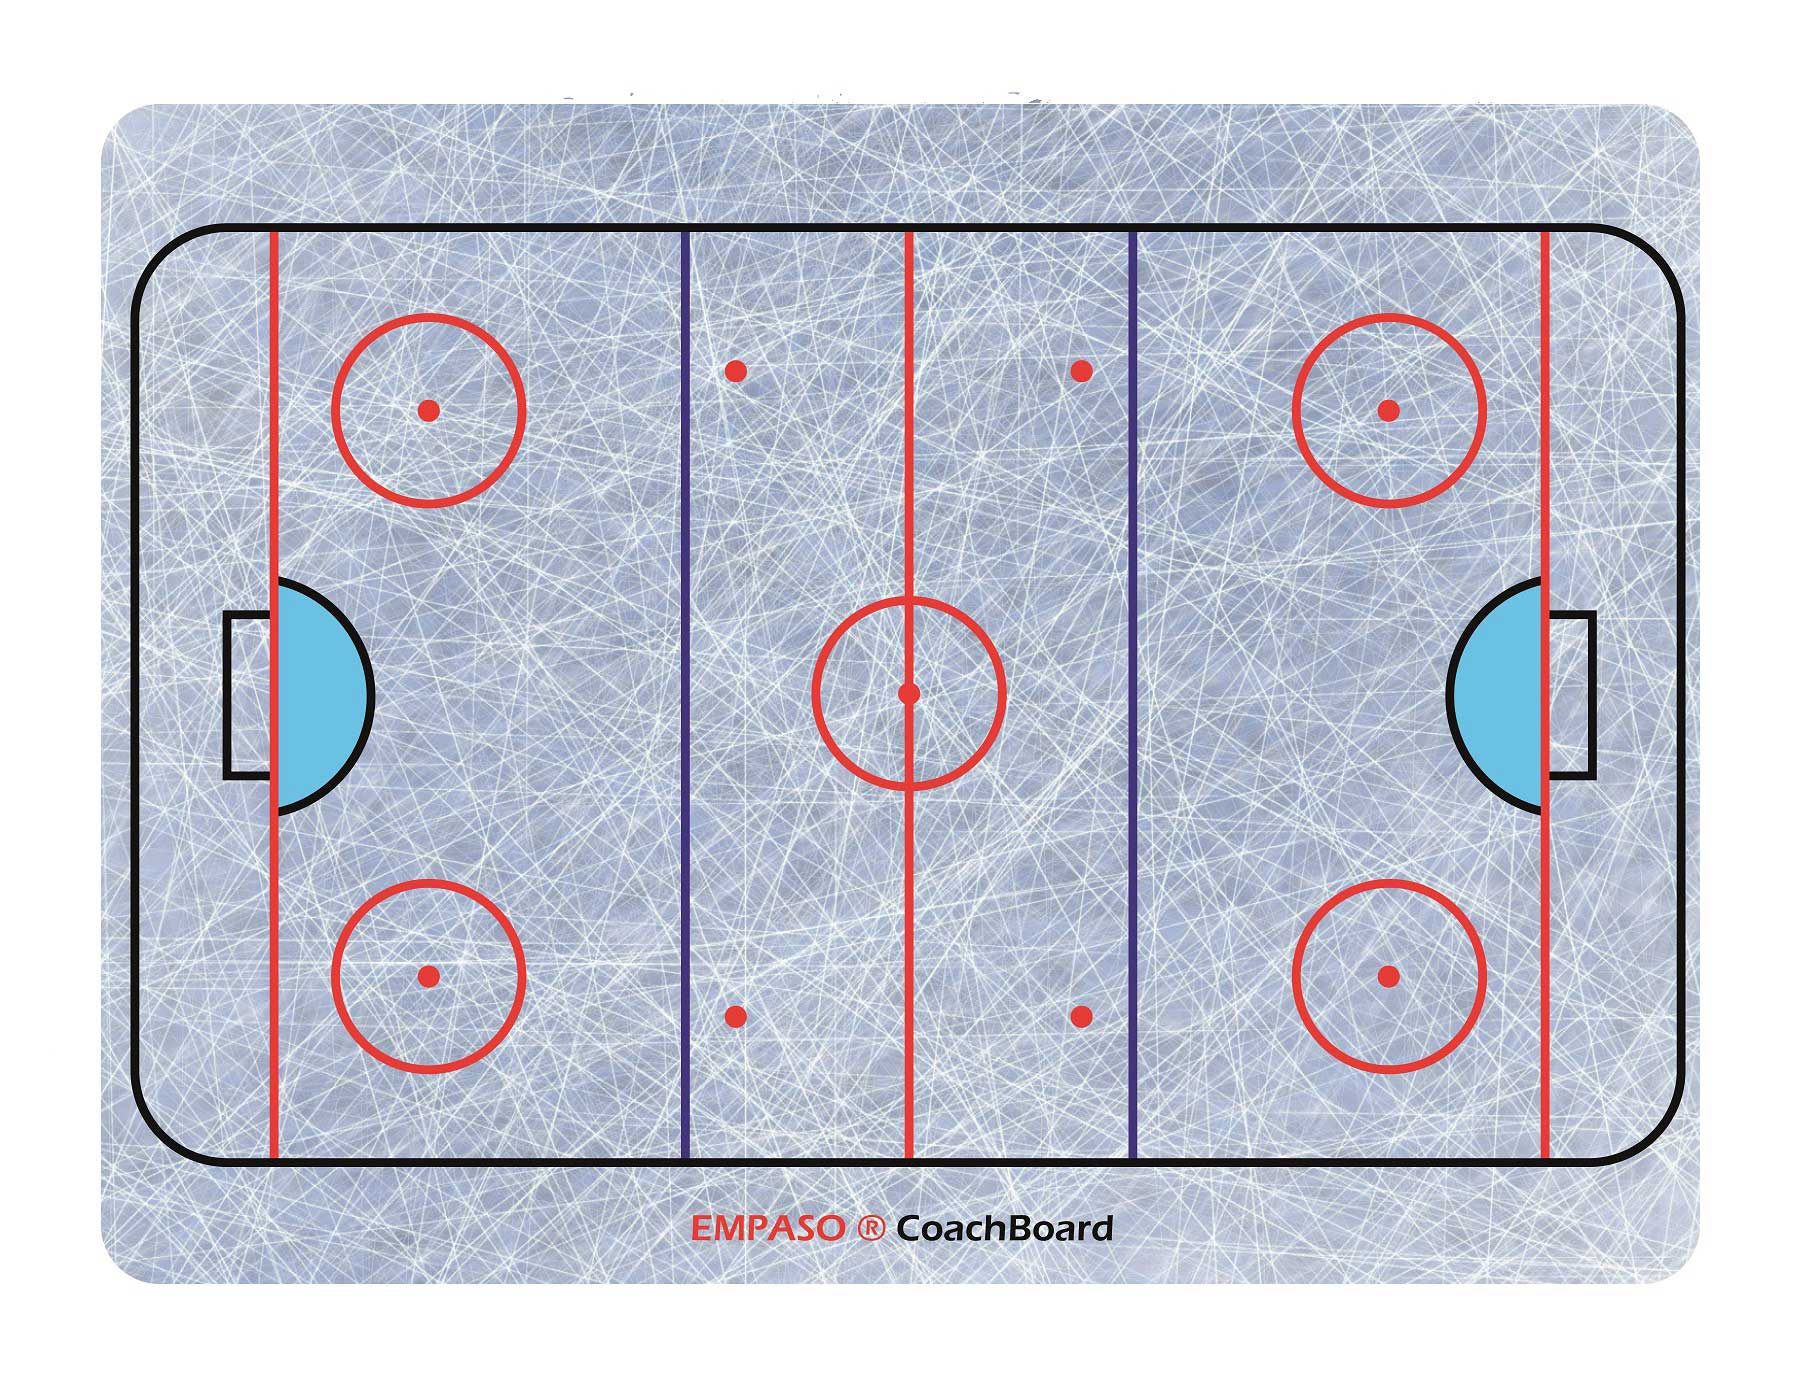 EMPASO Coach board - Coach Tactical Board – Ice Hockey Coaching Board